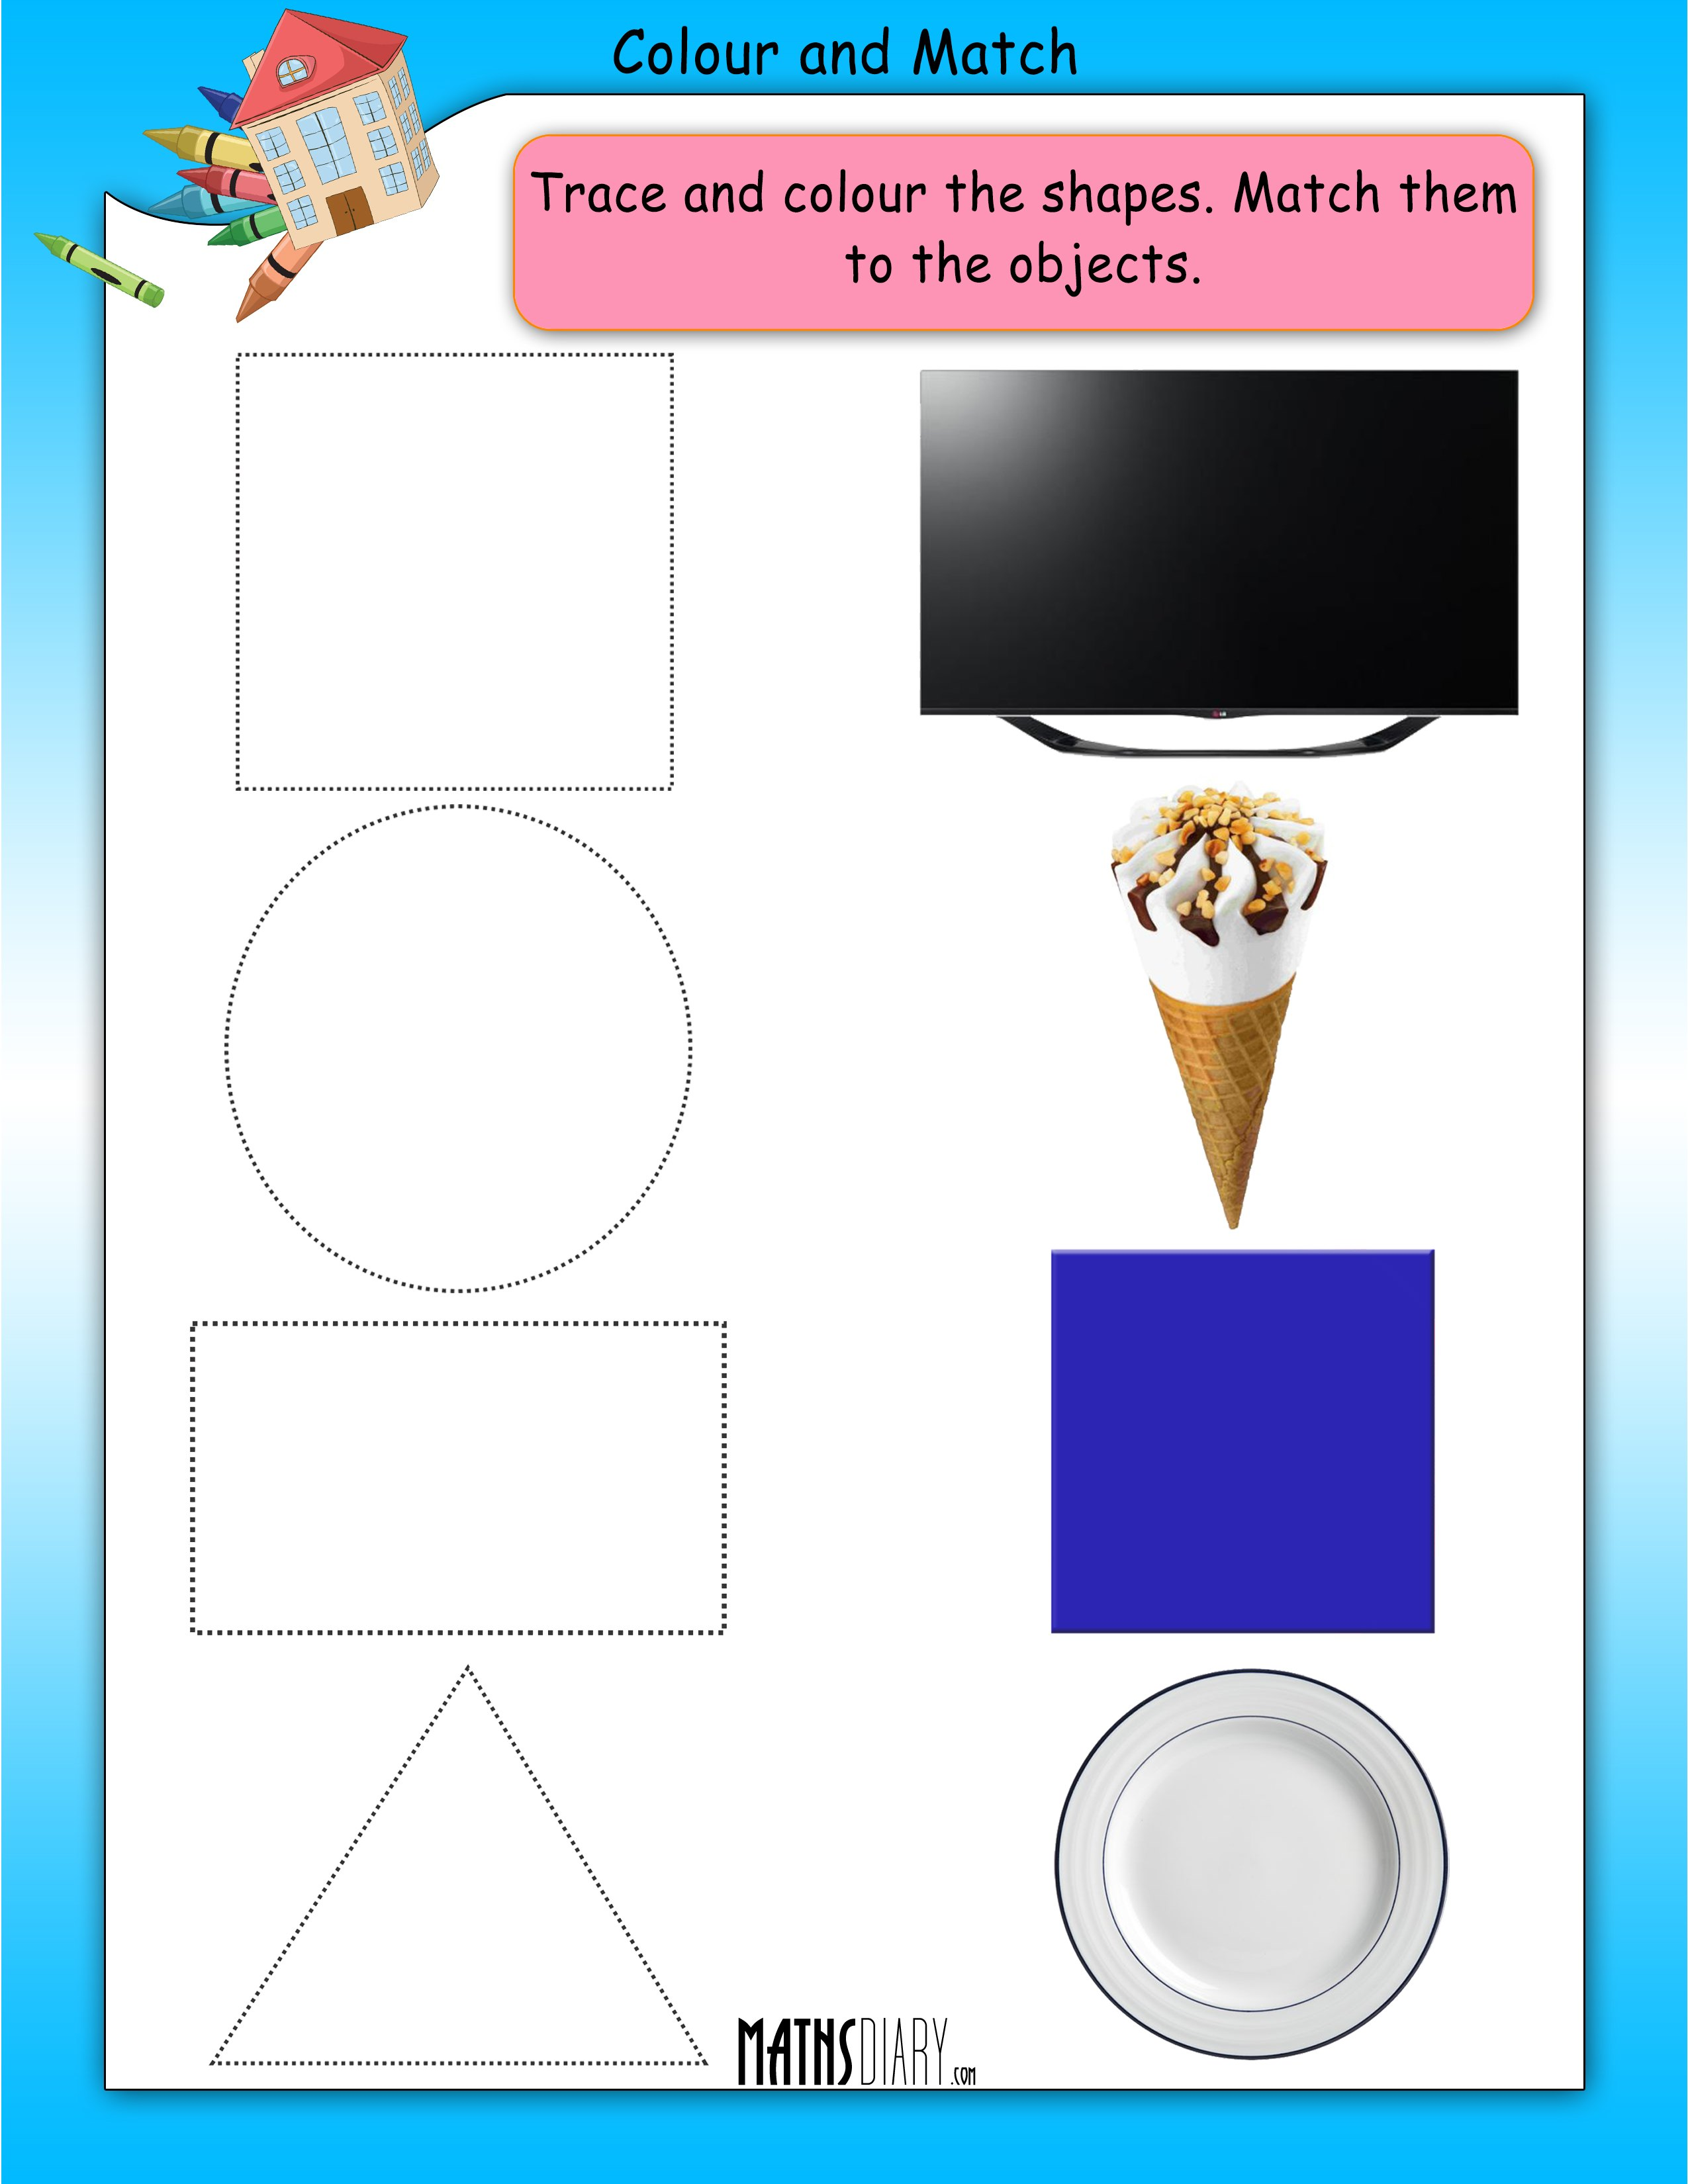 worksheet Matching Shapes To Objects Worksheets lkg math worksheets page 2 colour and match shapes worksheet 3